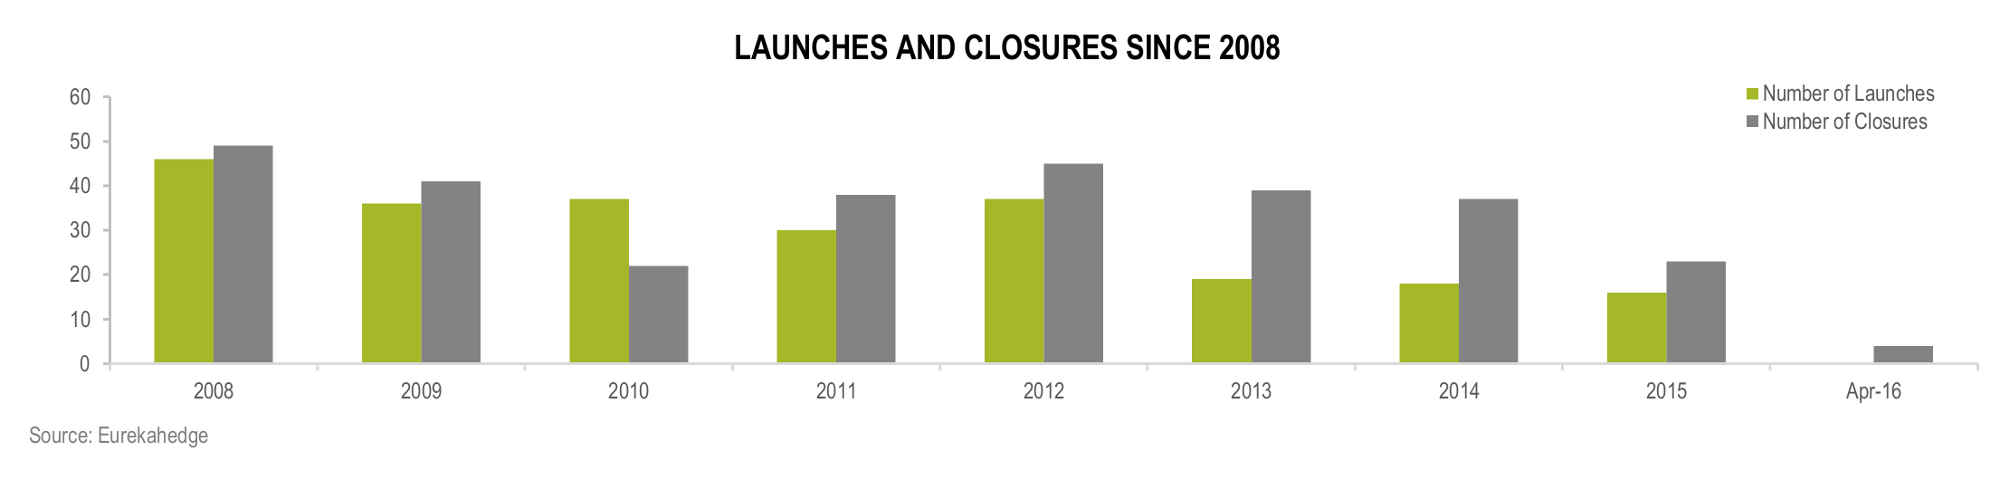 Latin American Hedge Funds Infographic June 2016 - Fund launches and closures since 2008